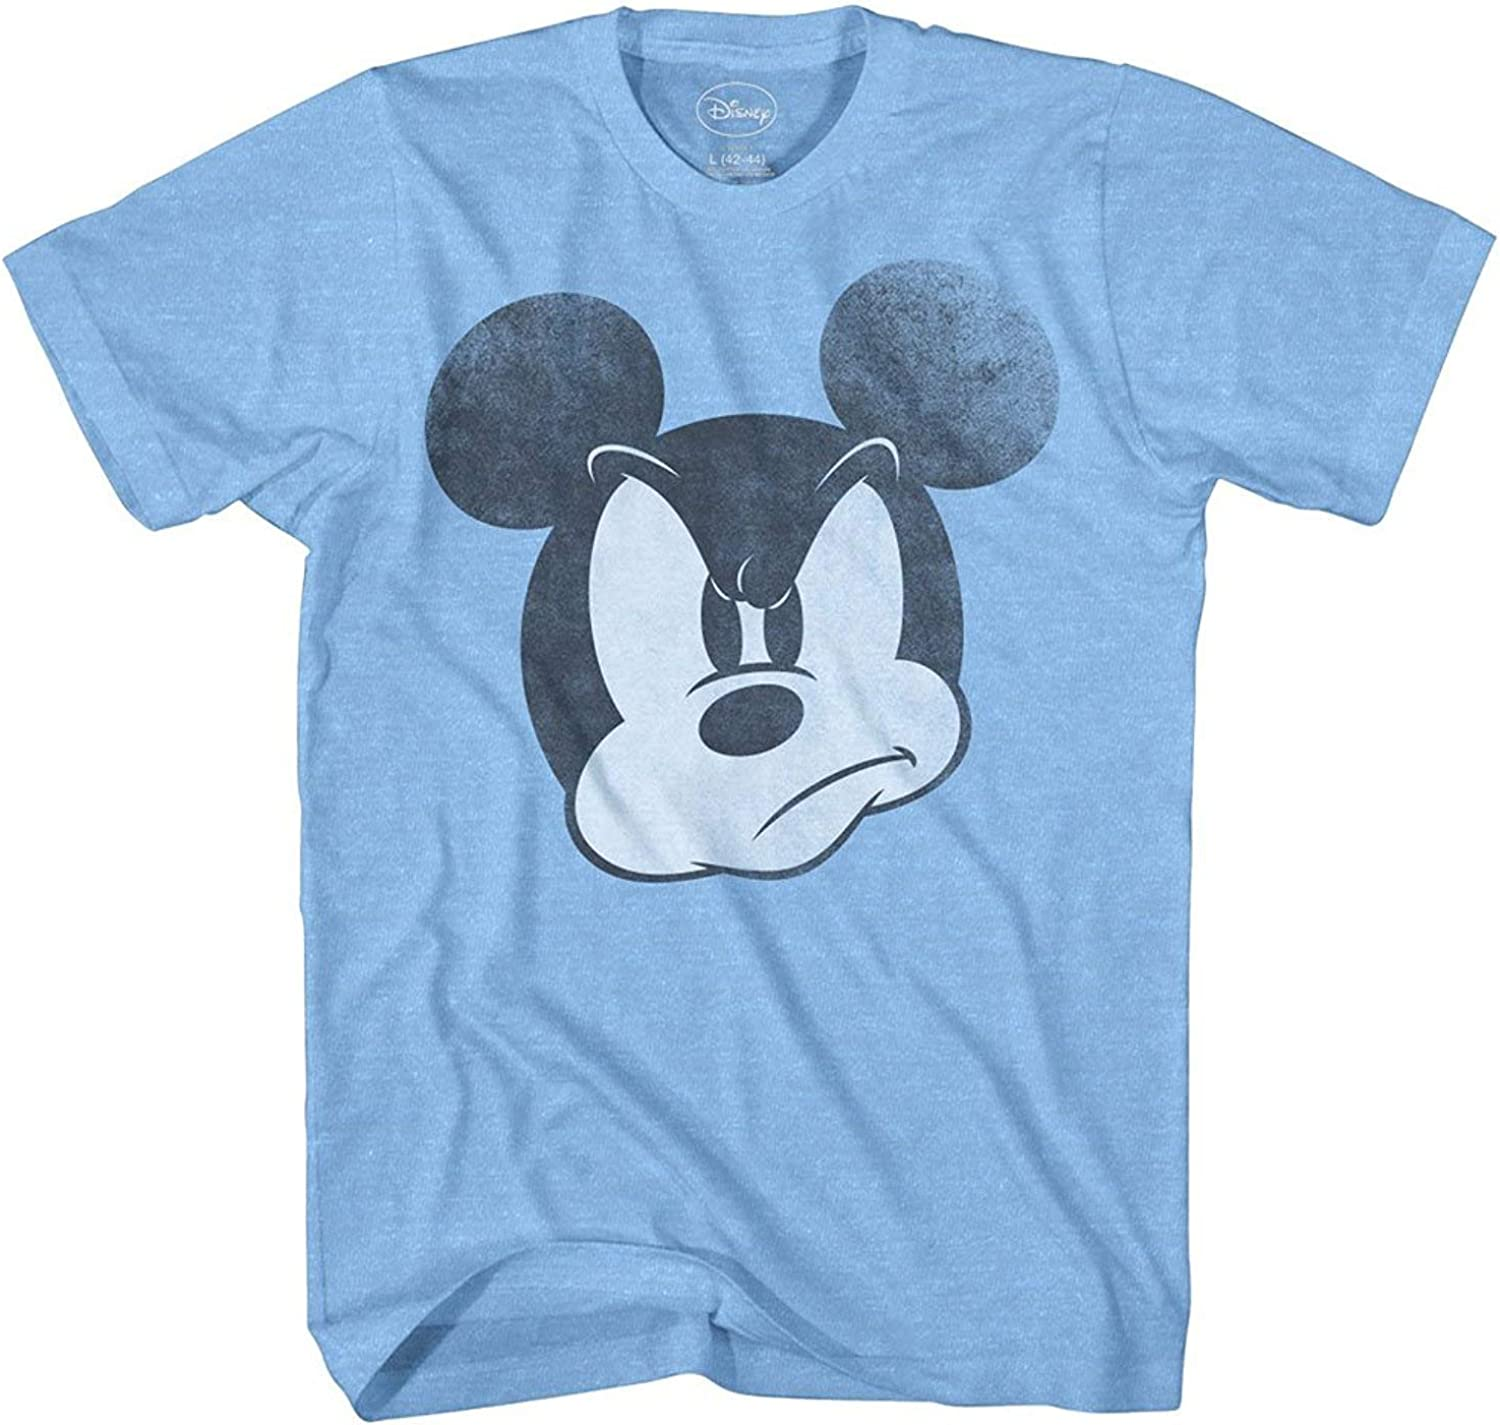 Mad Mickey Mouse Graphic Tee Classic Vintage Disneyland World Mens Adult Tee Graphic T-Shirt for Men Tshirt: Clothing